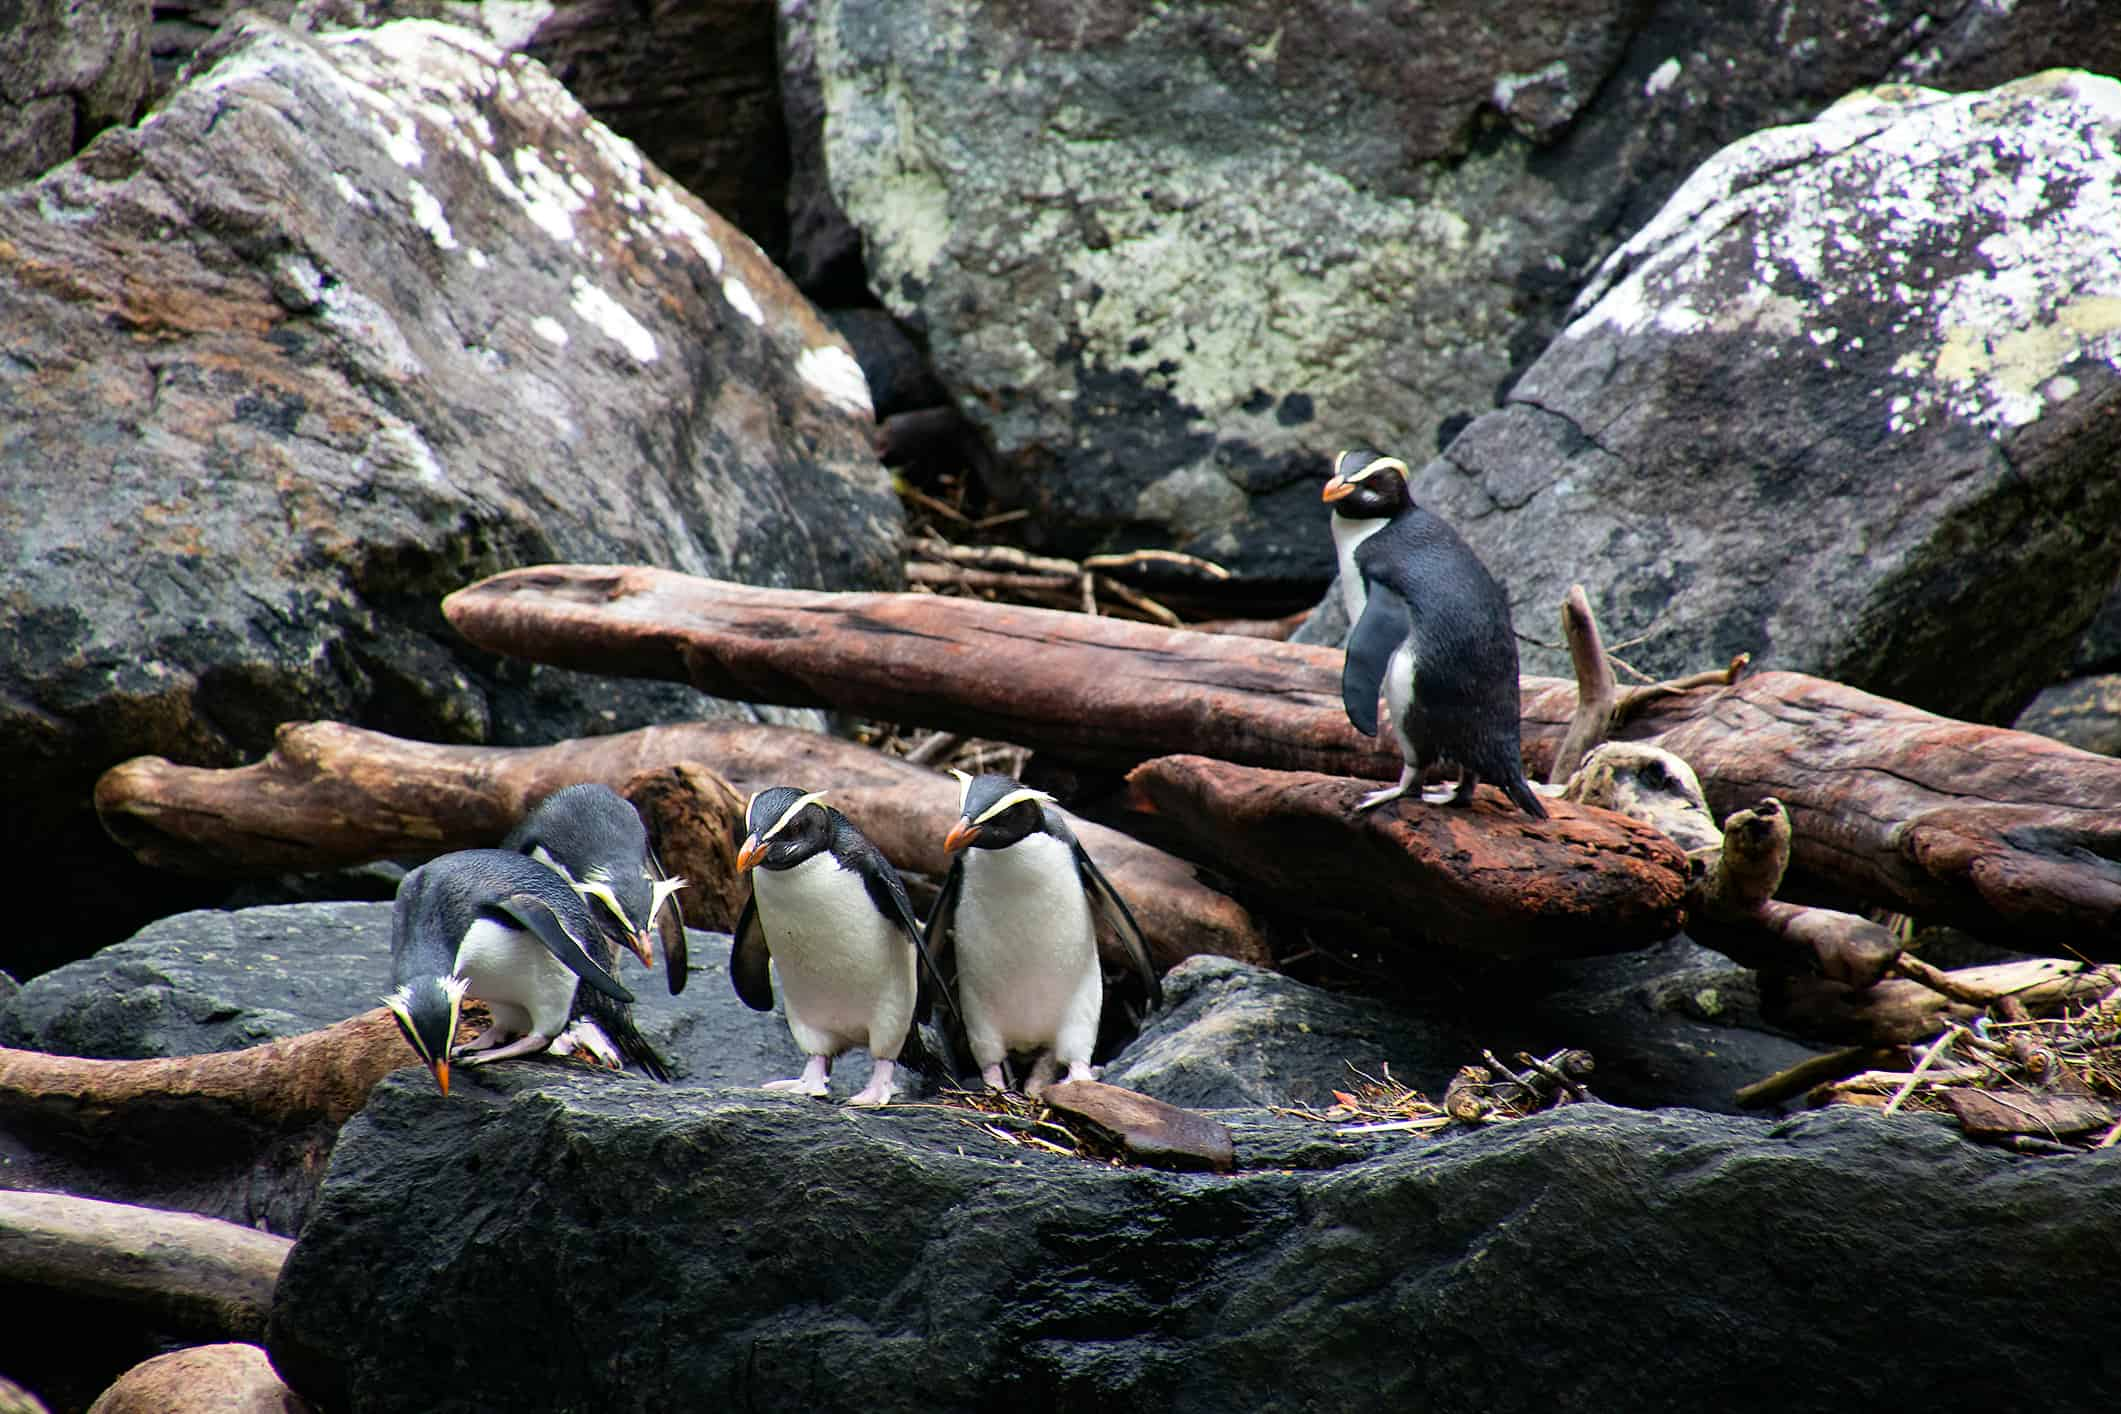 A group of fiordland crested penguins